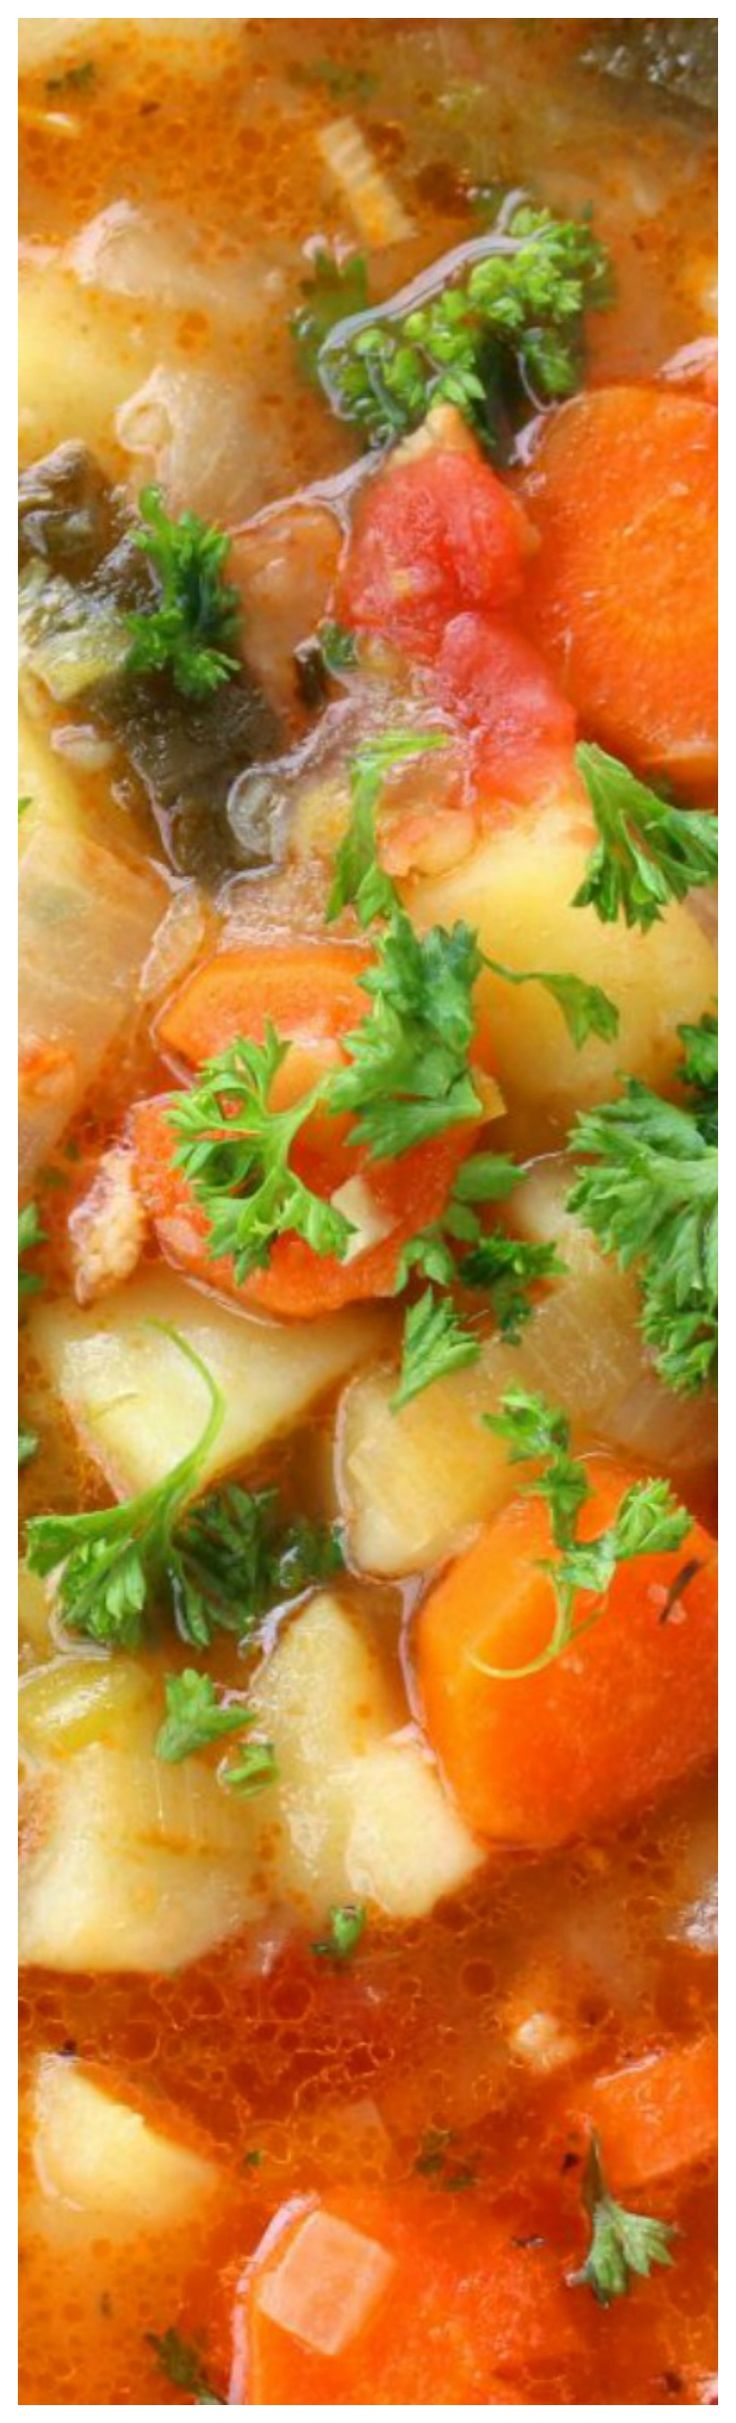 German Potato Soup ~ This delicious, authentic German Potato Soup will satisfy both tummy and soul!